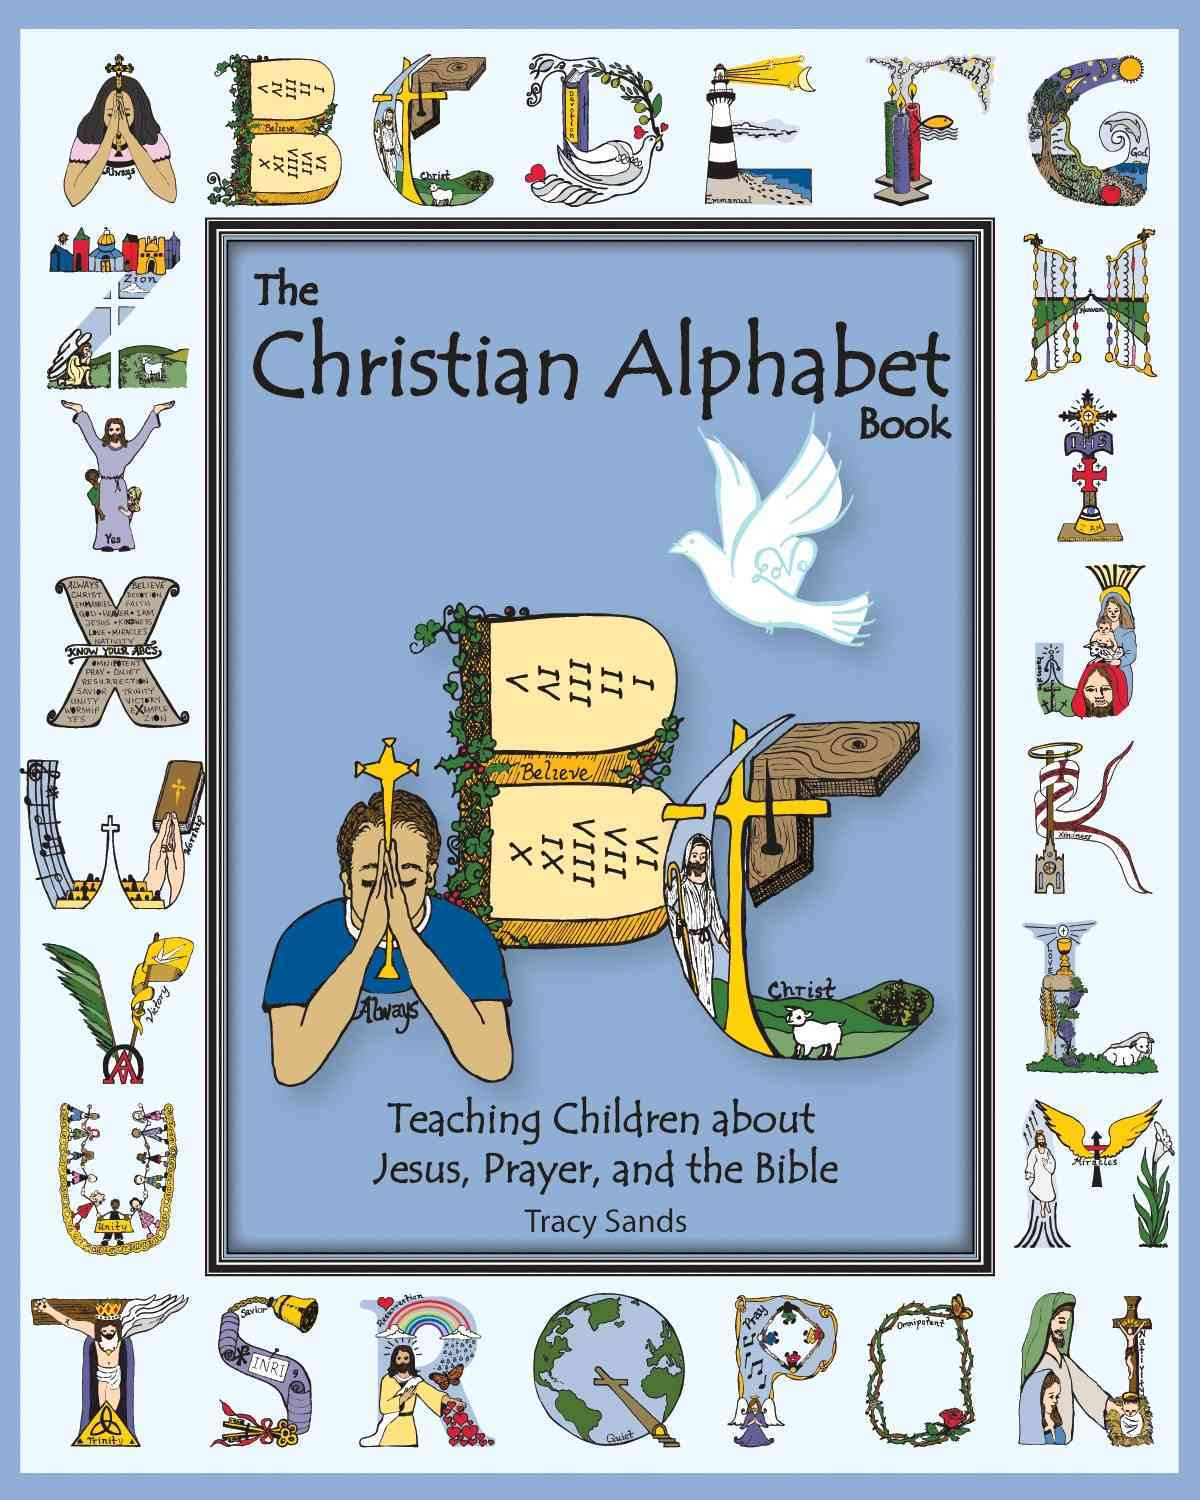 The Christian Alphabet Book: Teaching Children About Jesus, Prayer, and the Bible (Hardcover)